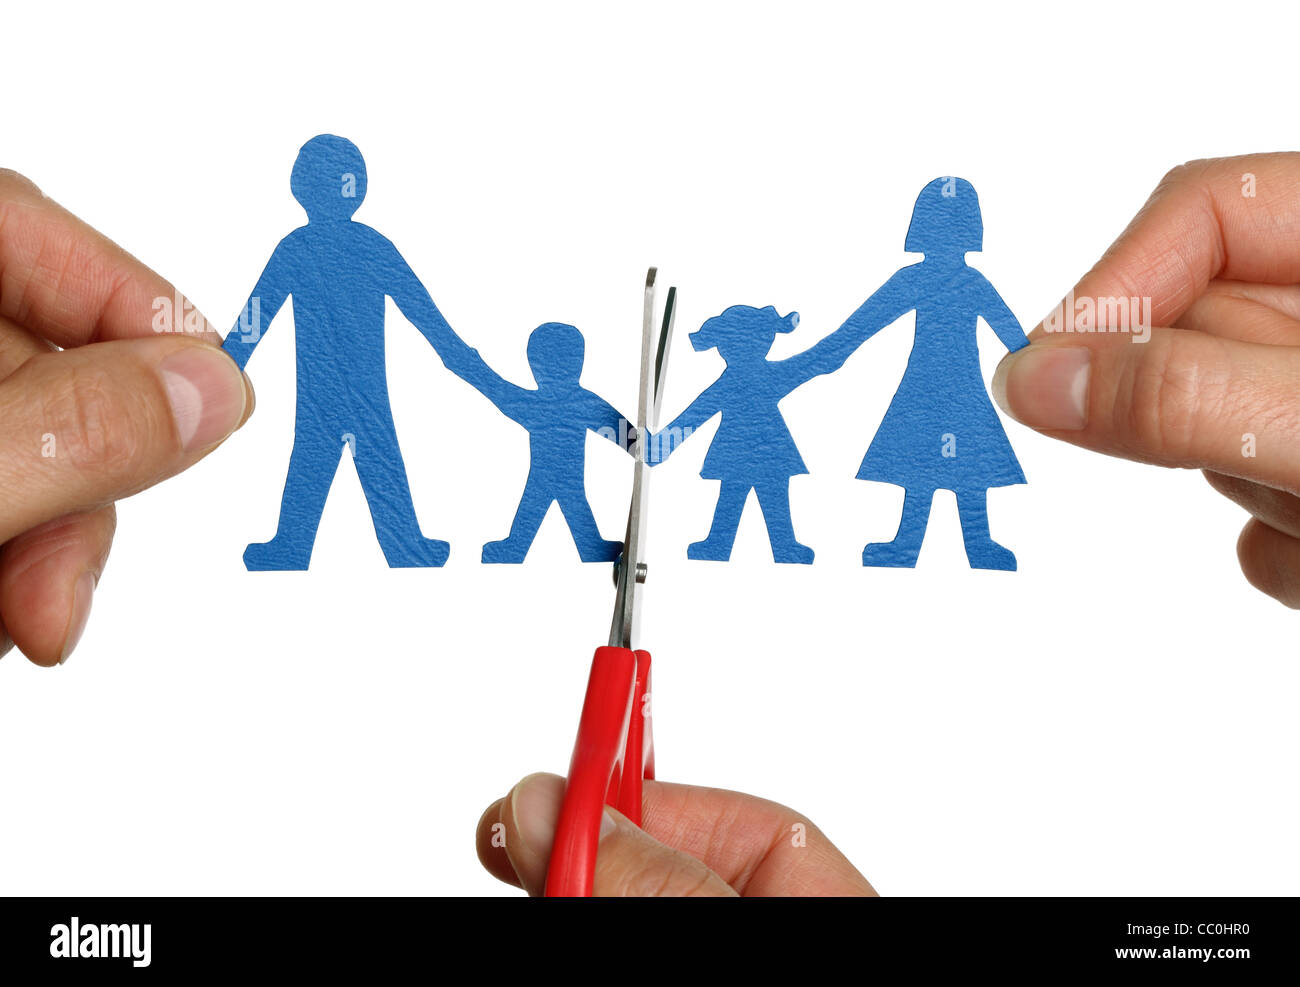 Paper chain family divorce - Stock Image